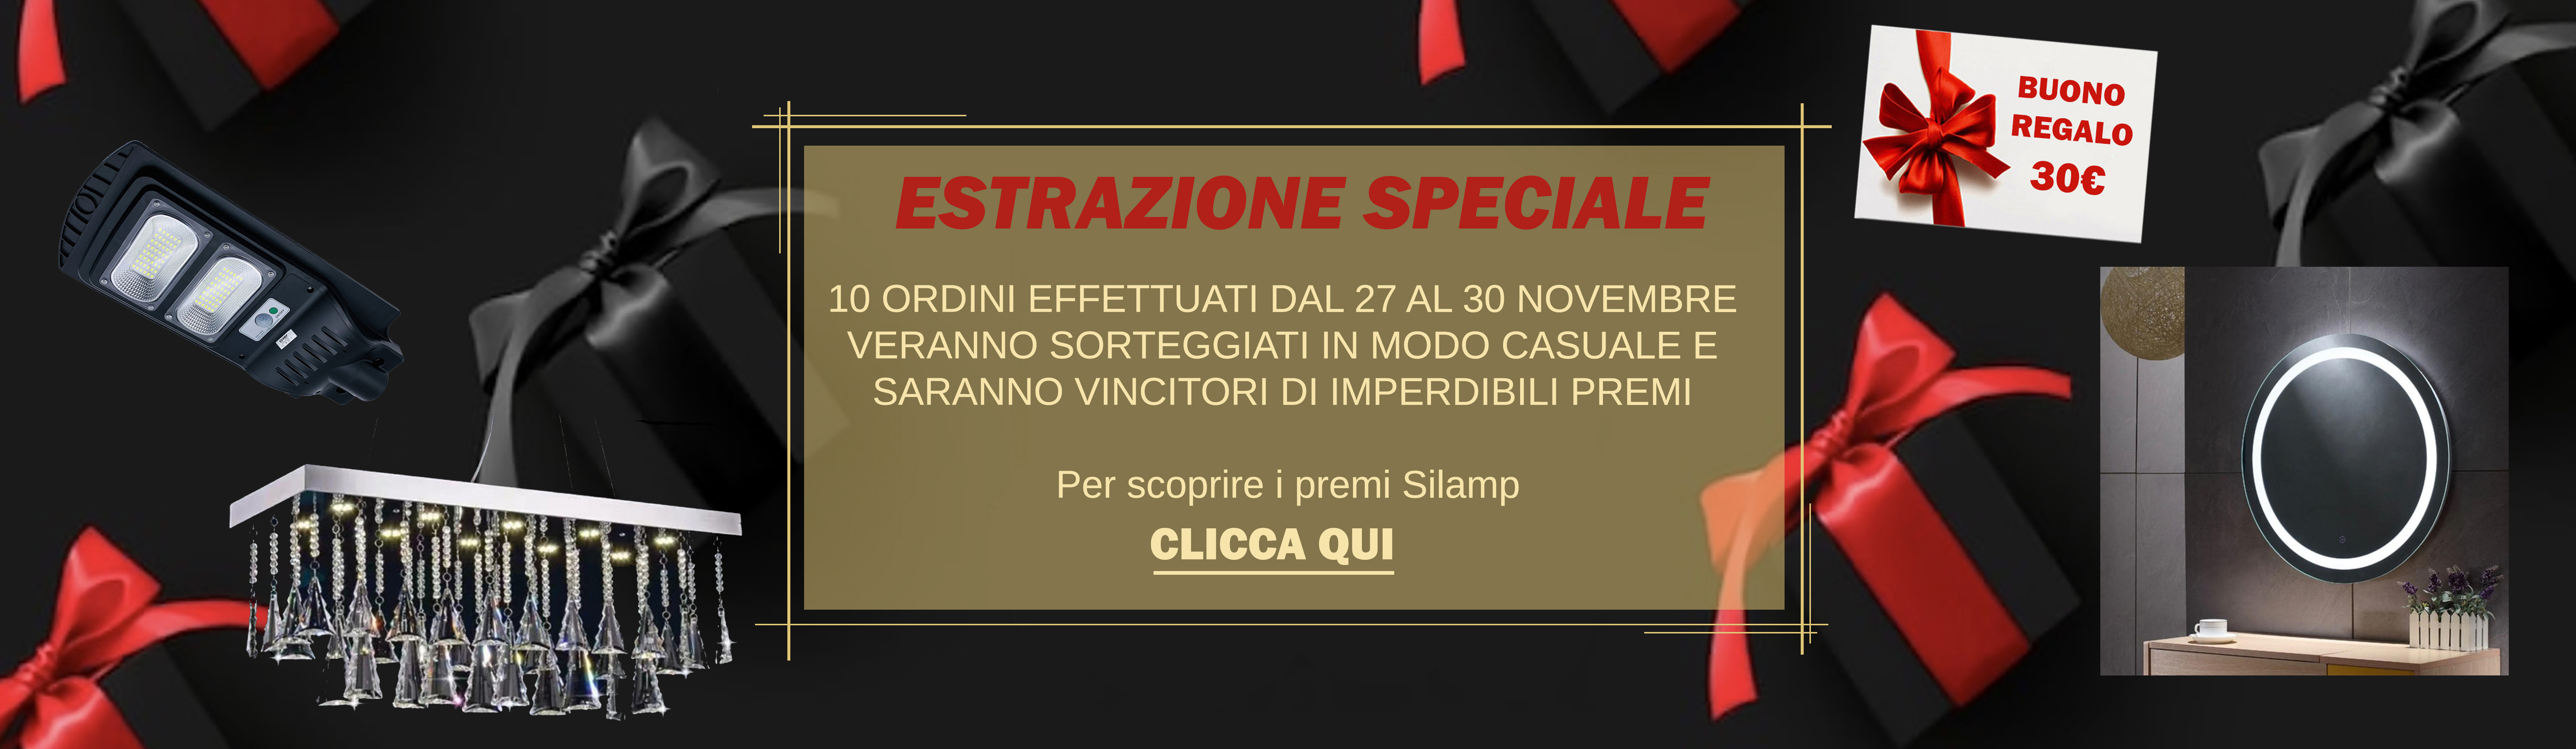 blackfriday estrazione